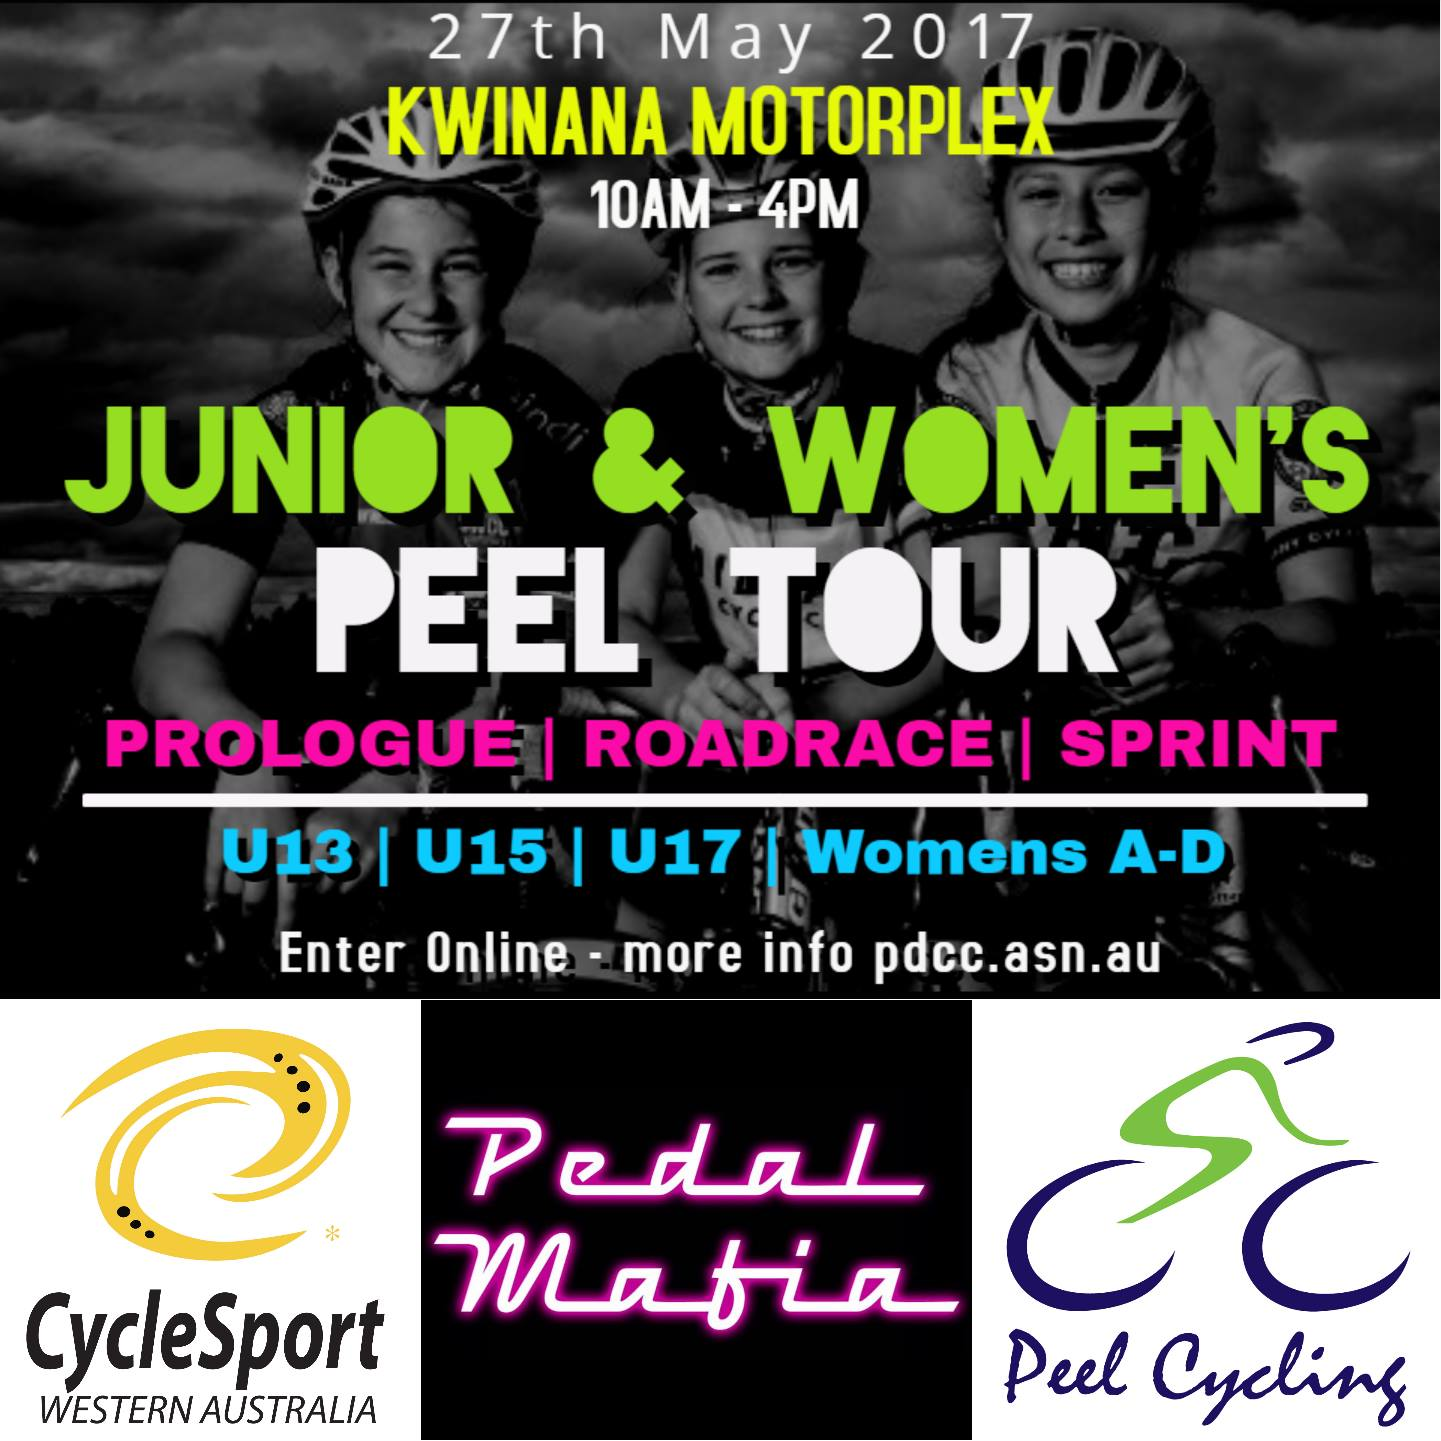 peel junior and womens tour flyer